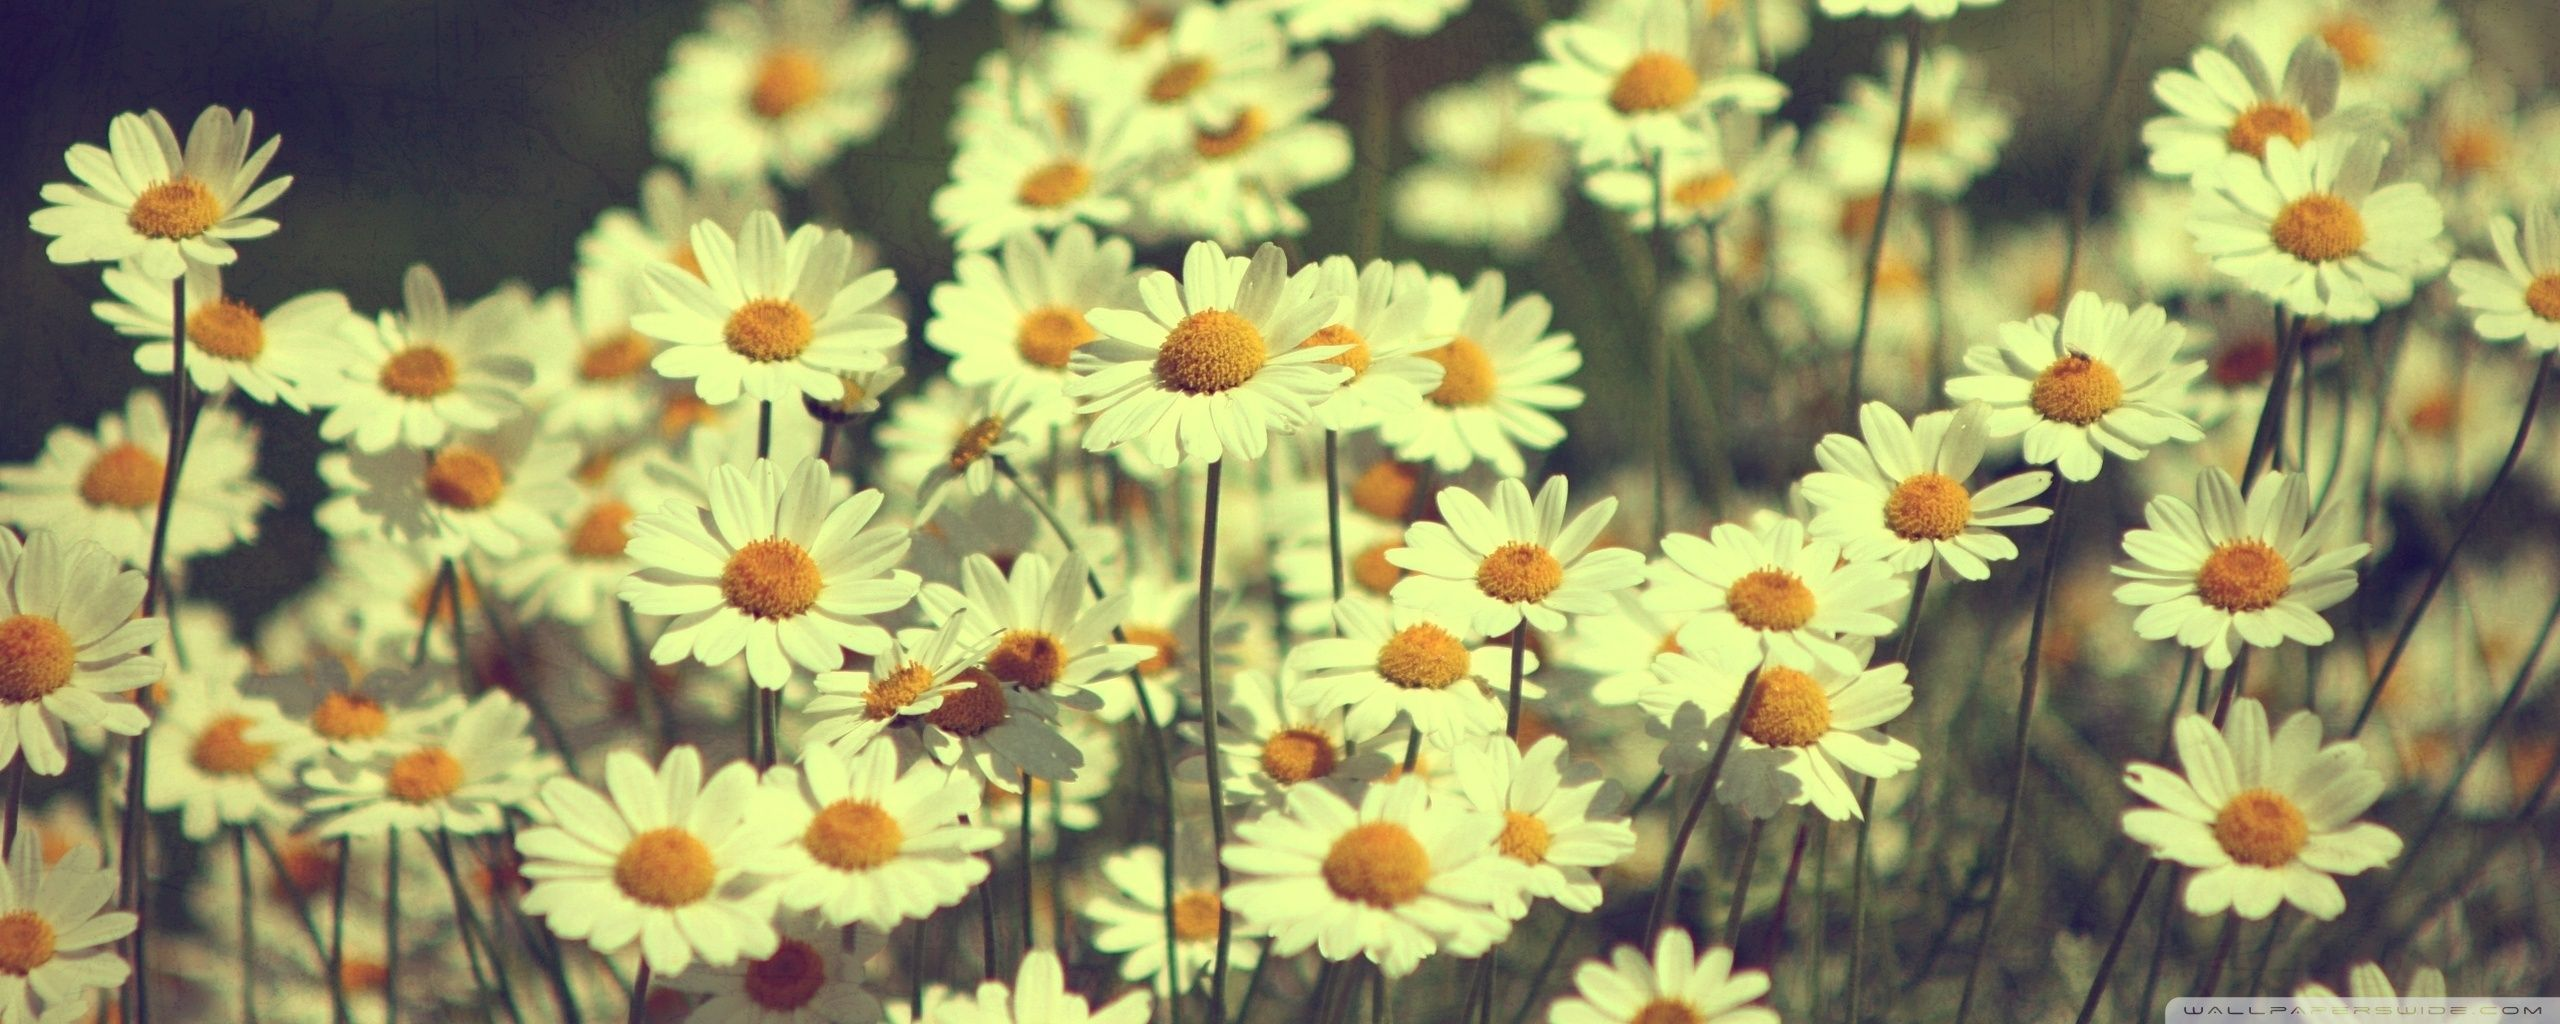 vintage sunflower wallpaper desktop ~ sdeerwallpaper | hihi